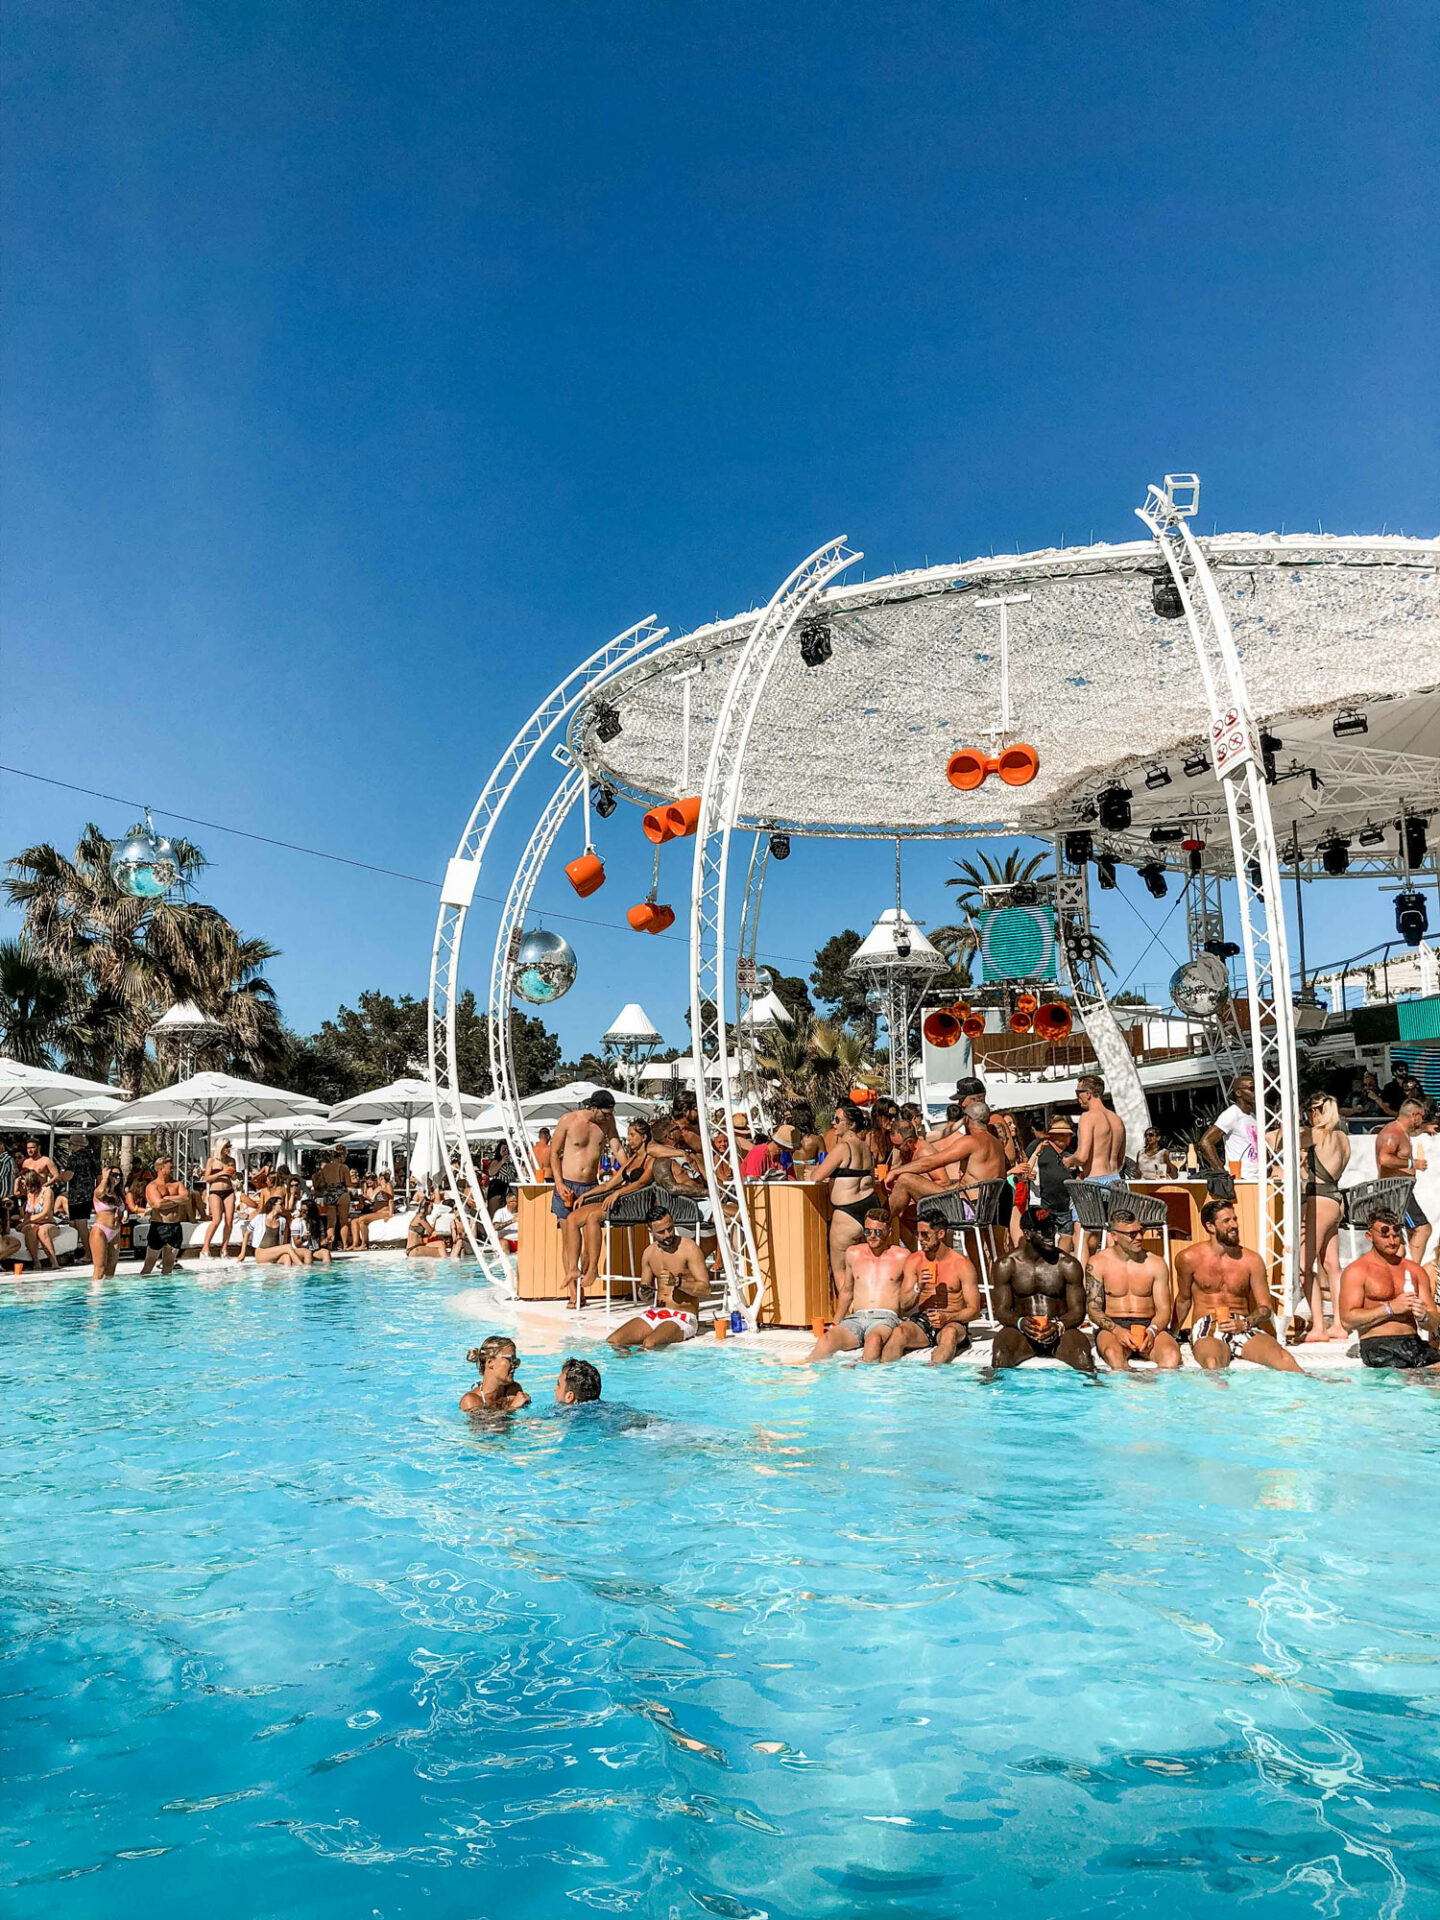 1-Top-things-to-do-in-Ibiza-Bucket-list--Instagram-Story-Template--kelseyinlondon-Kelsey-Heinrichs--What-to-do-in-Ibiza--Where-to-go-in-Ibiza-top-places-in-Ibiza-o-beach